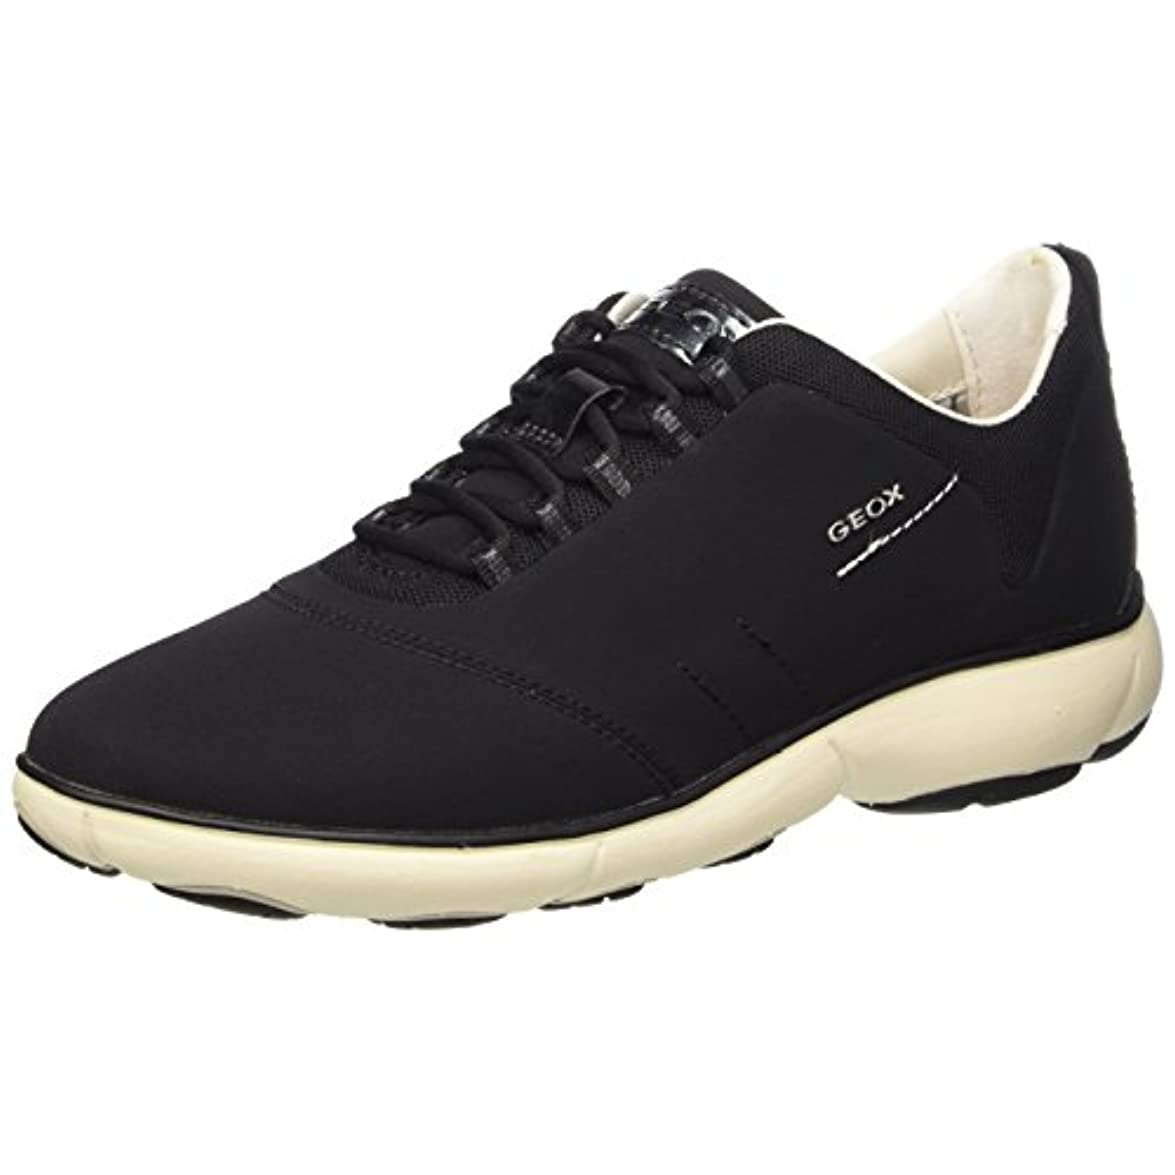 Geox D Nebula A Scarpe Low top Donna